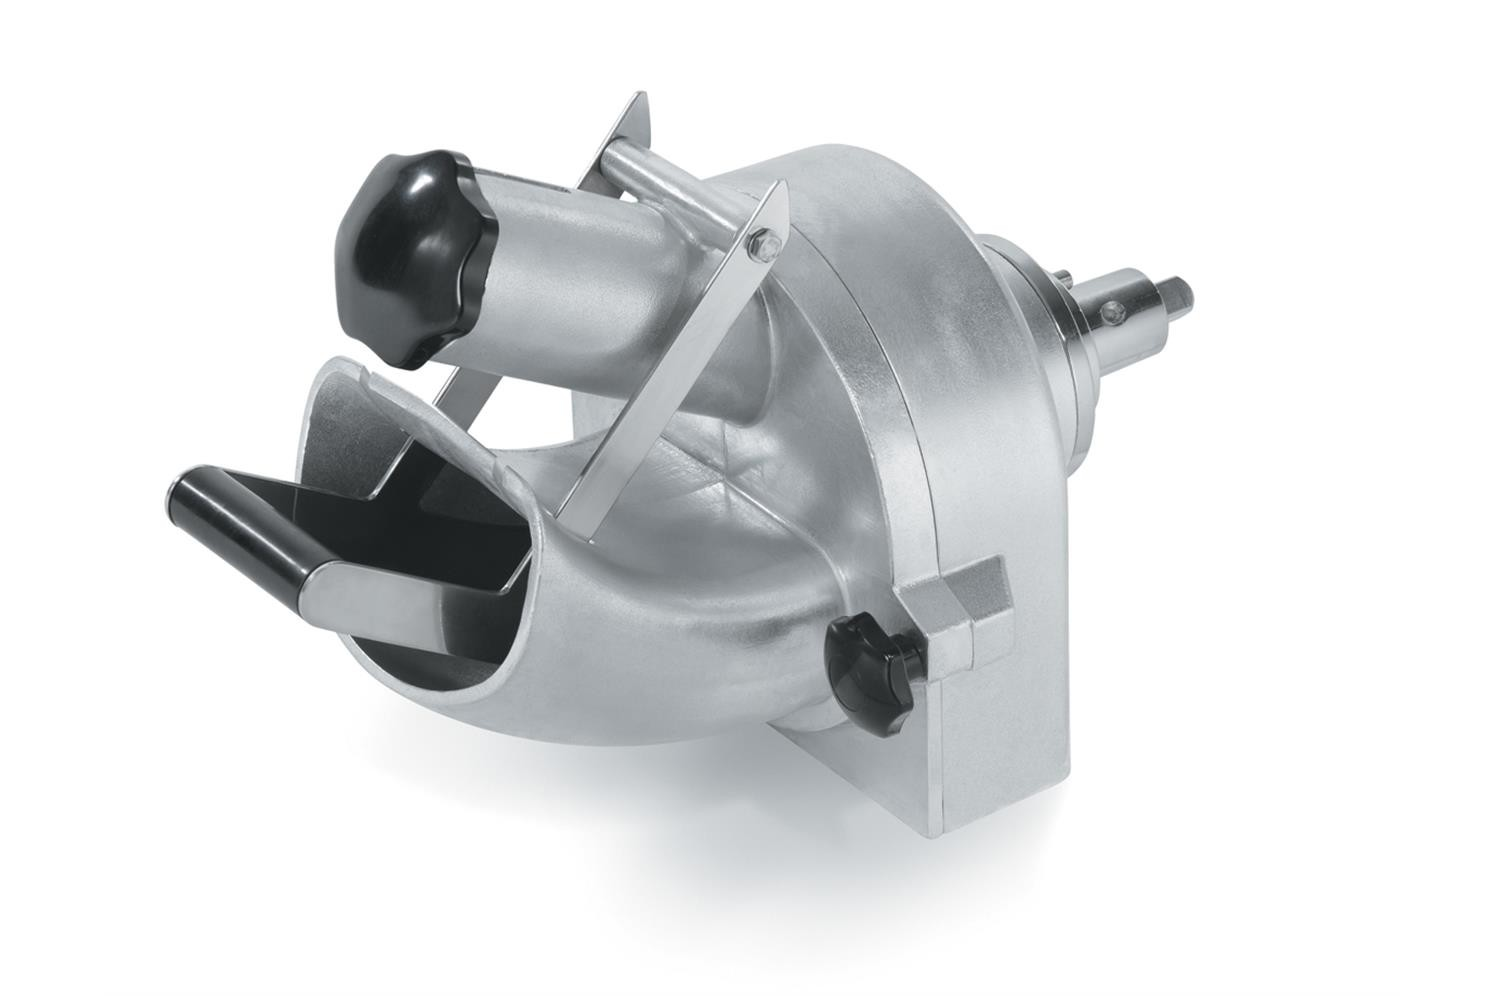 Vollrath 40785 Vegetable Slicer Head